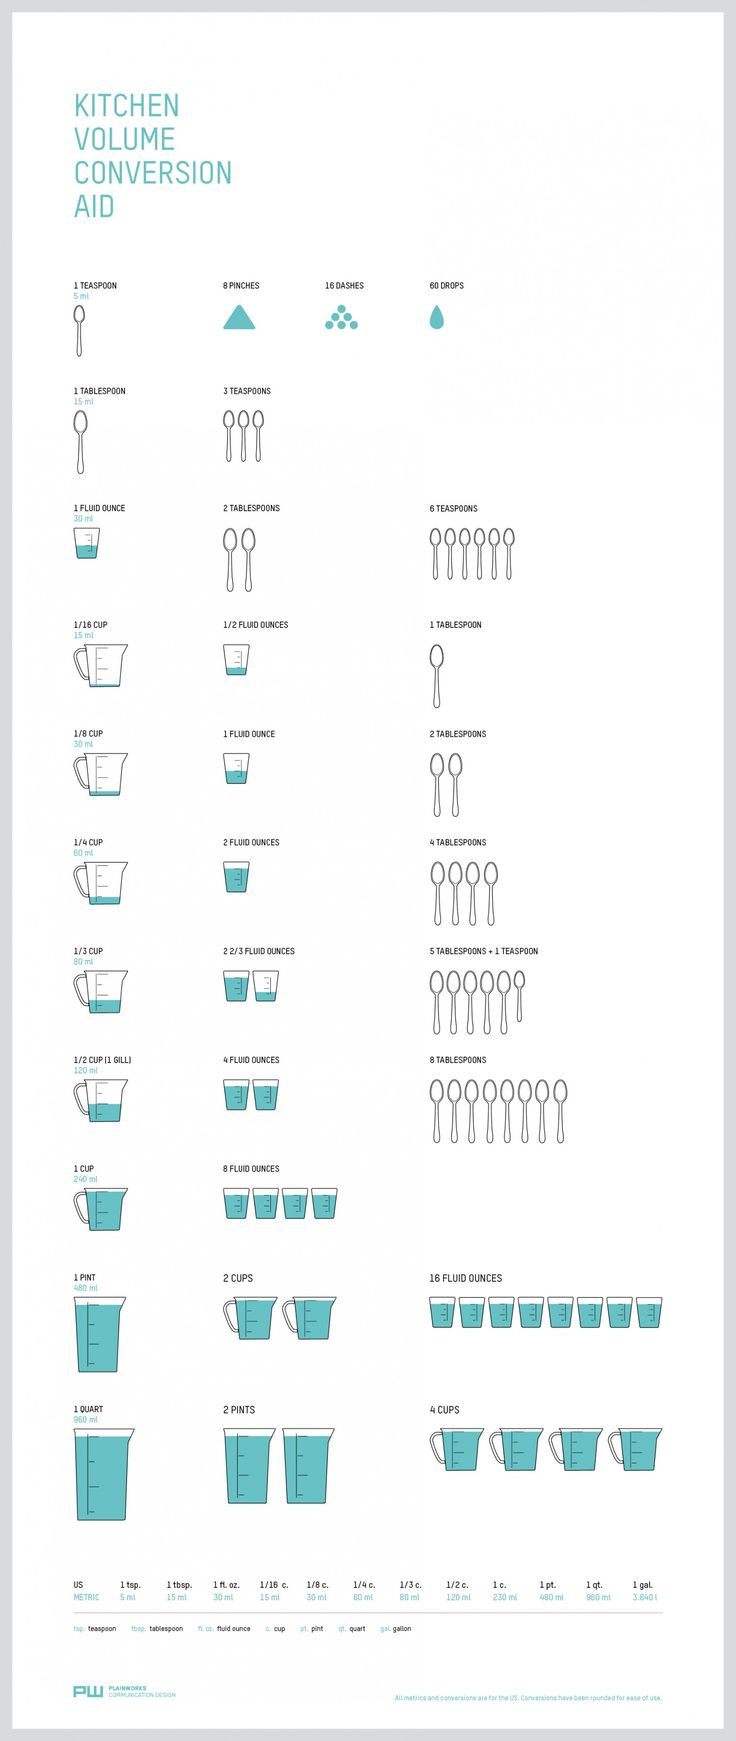 Kitchen Volume Conversion Aid Infographic - The Kitchen Volume Conversion Aid by Plainworks focuses entirely on volume and imperial units.